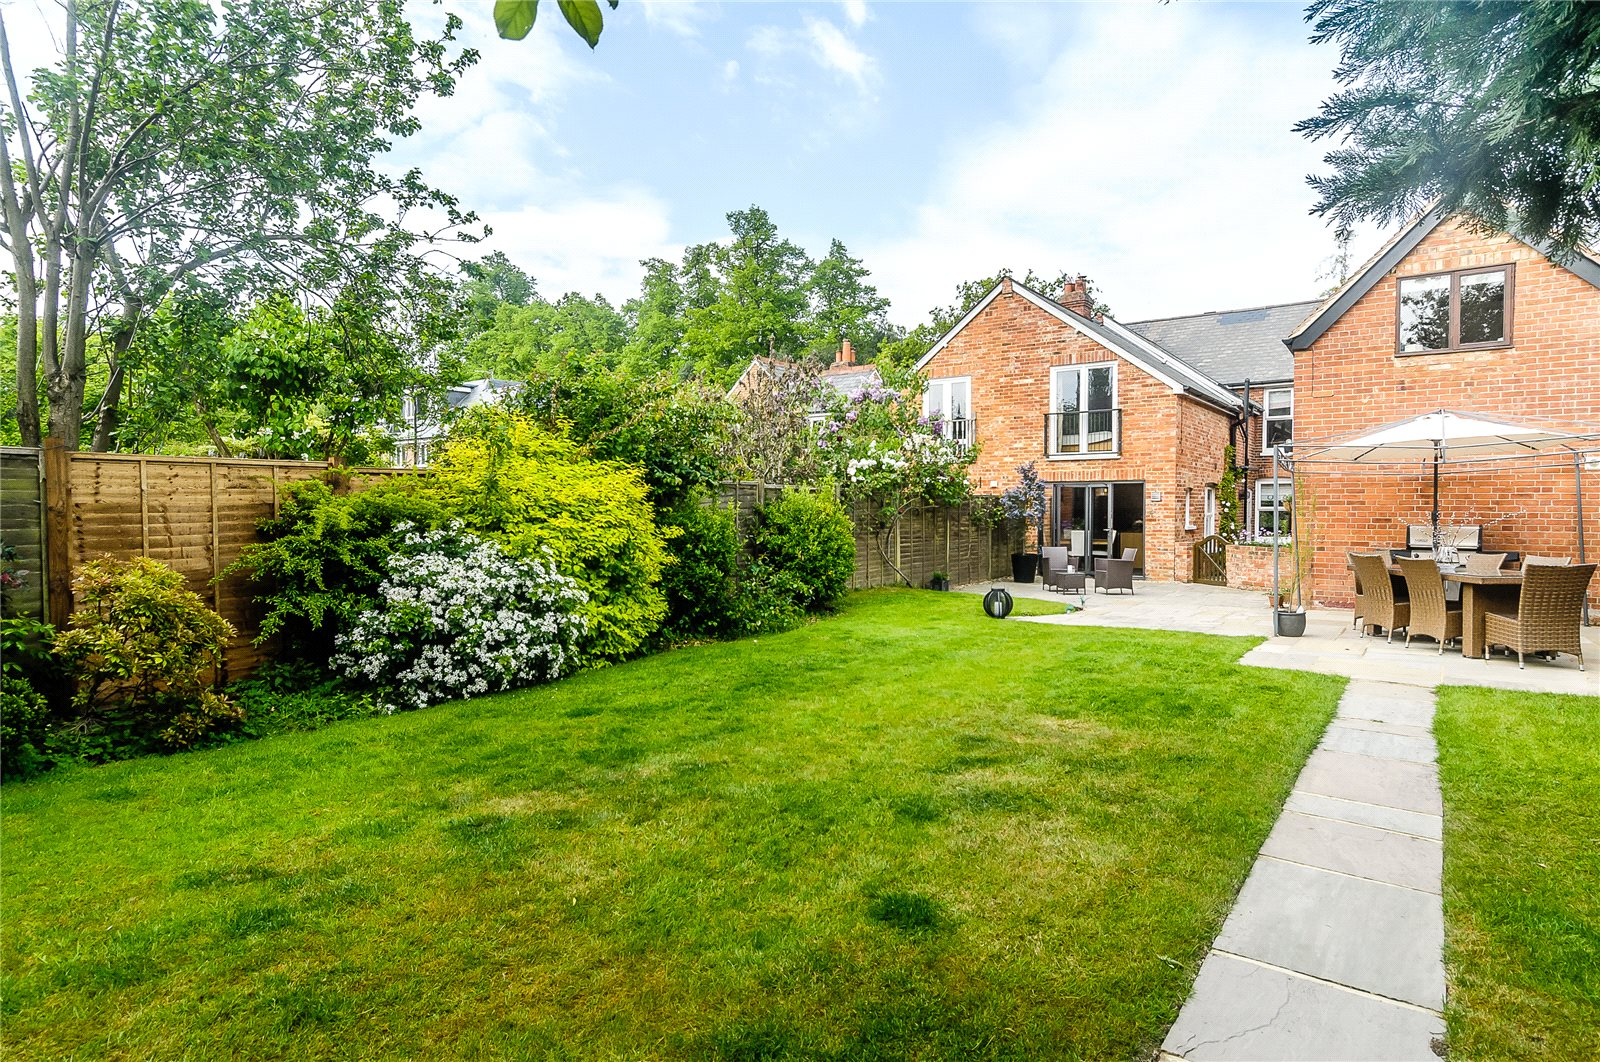 Additional photo for property listing at St Mark's Road, Binfield, Bracknell, Berkshire, RG42 Bracknell, Inglaterra